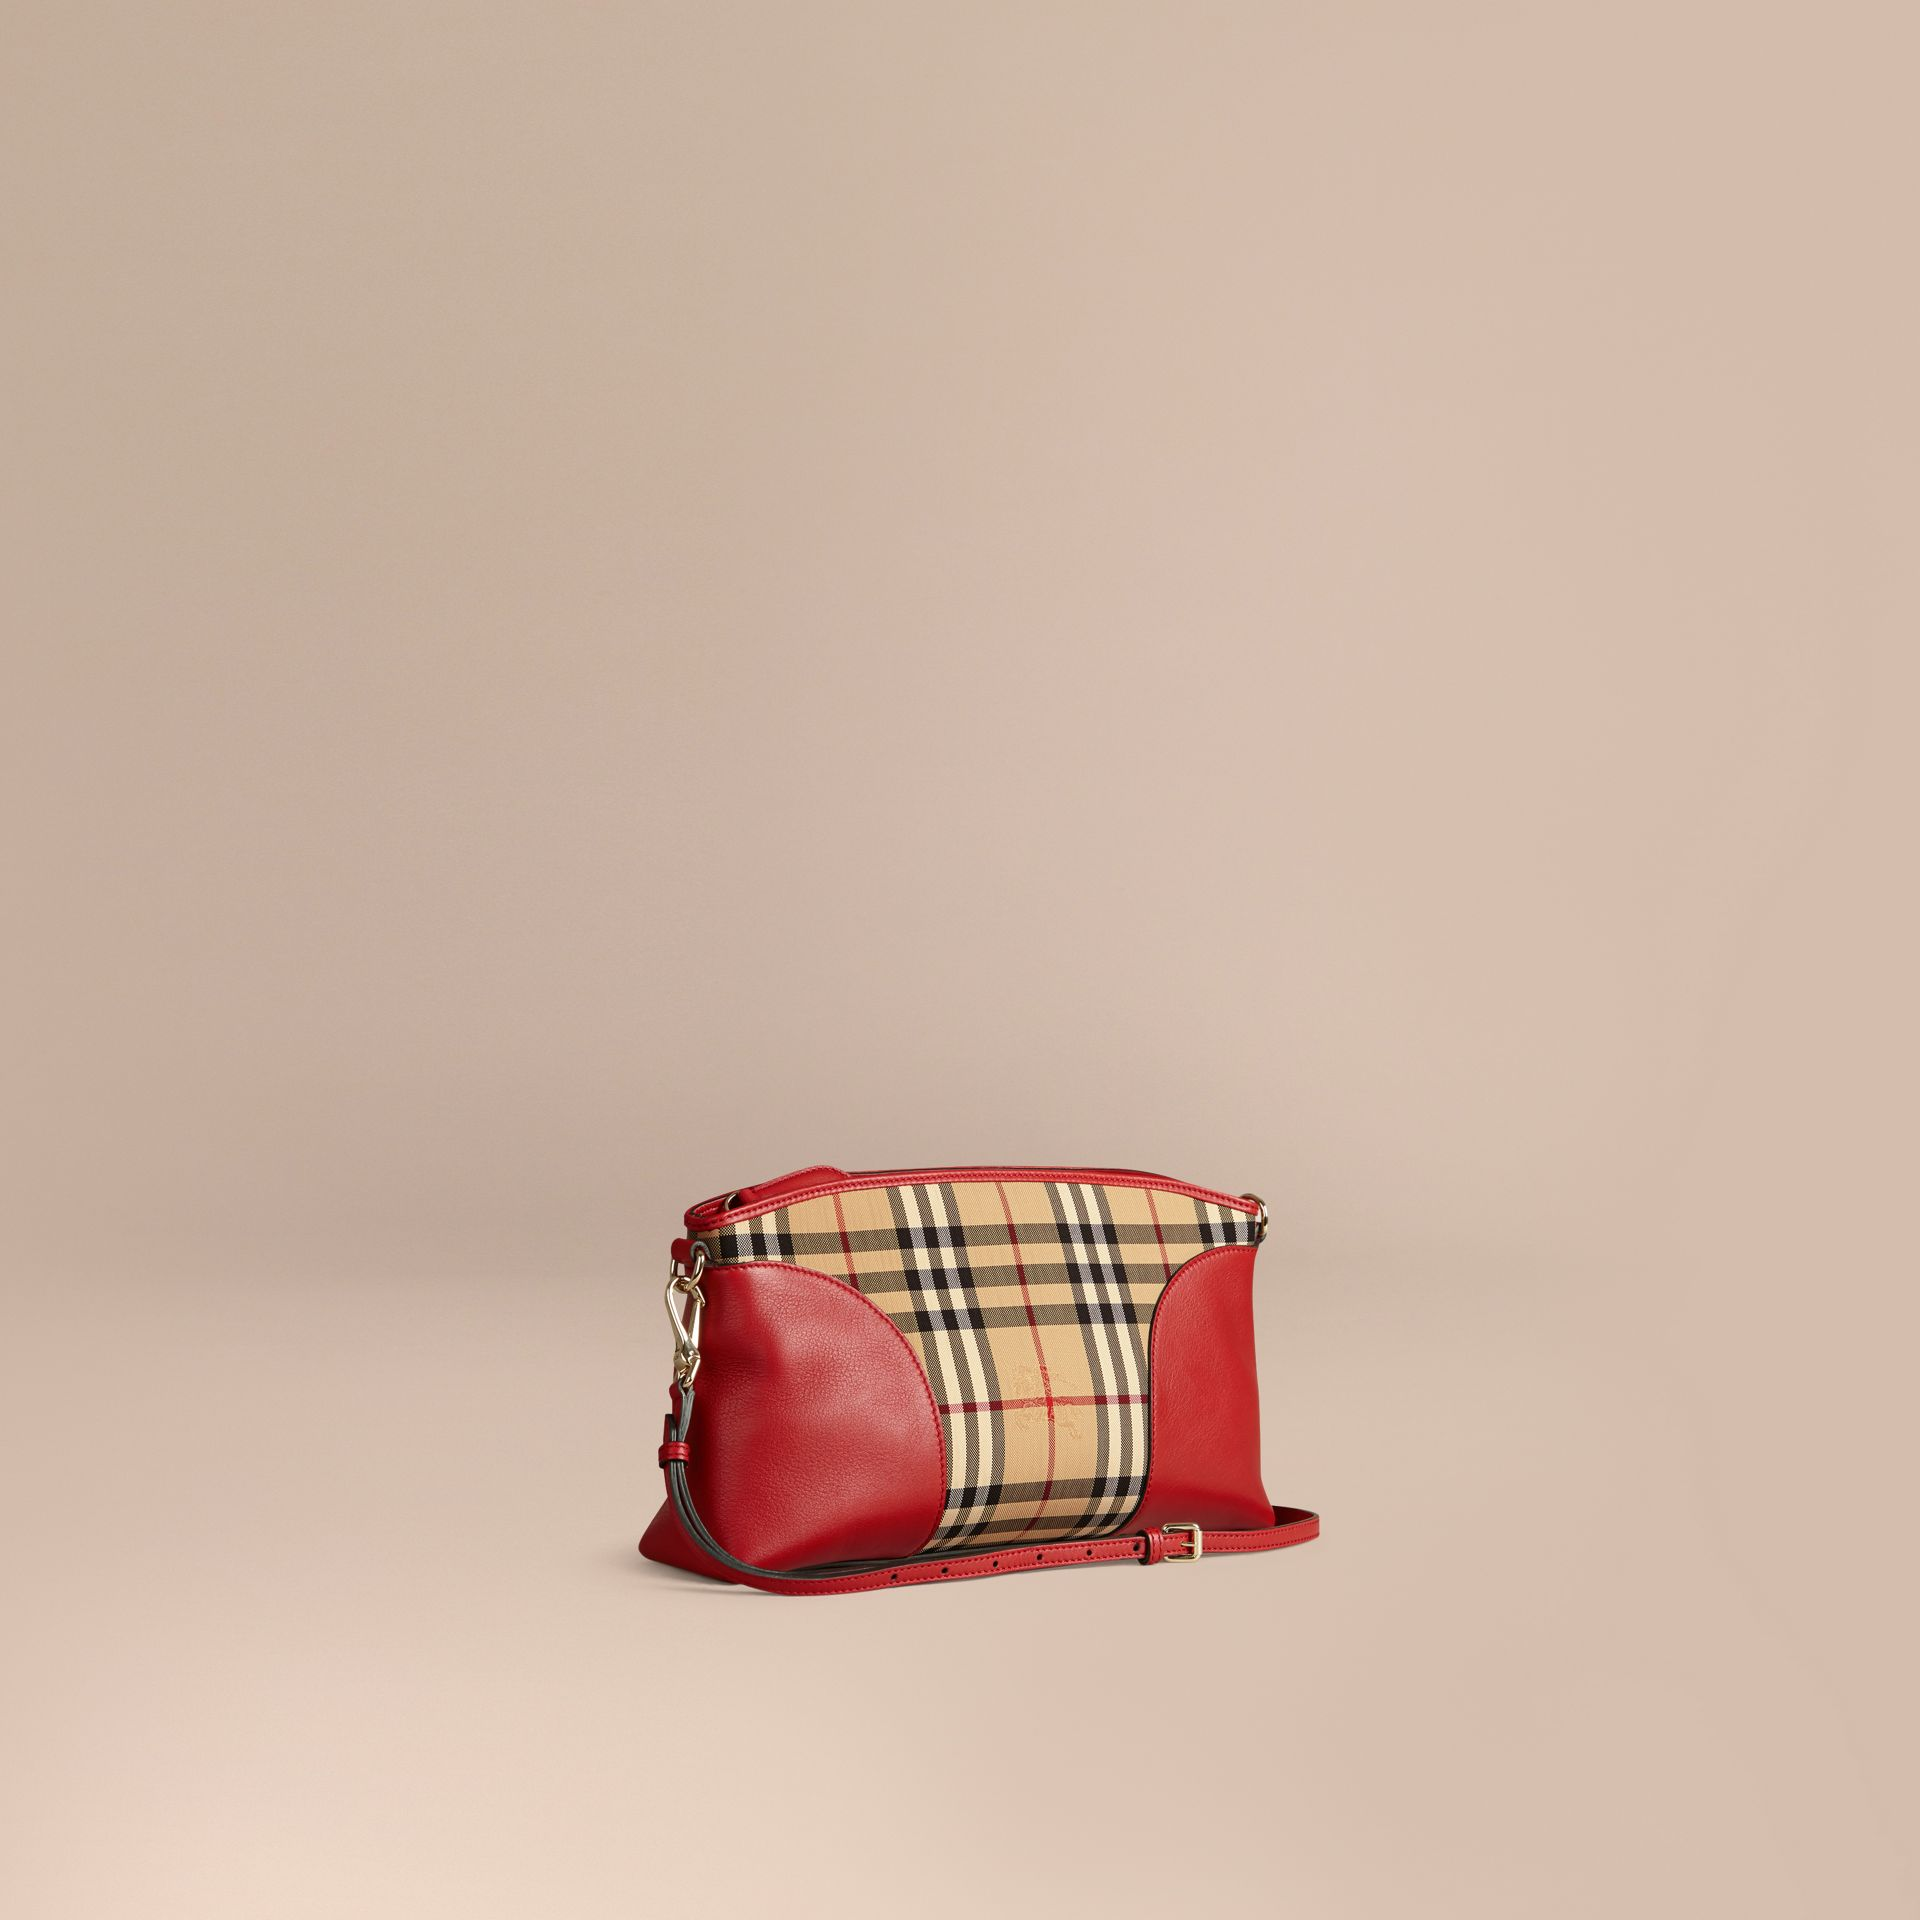 Honey/parade red Horseferry Check and Leather Clutch Bag Honey/parade Red - gallery image 1